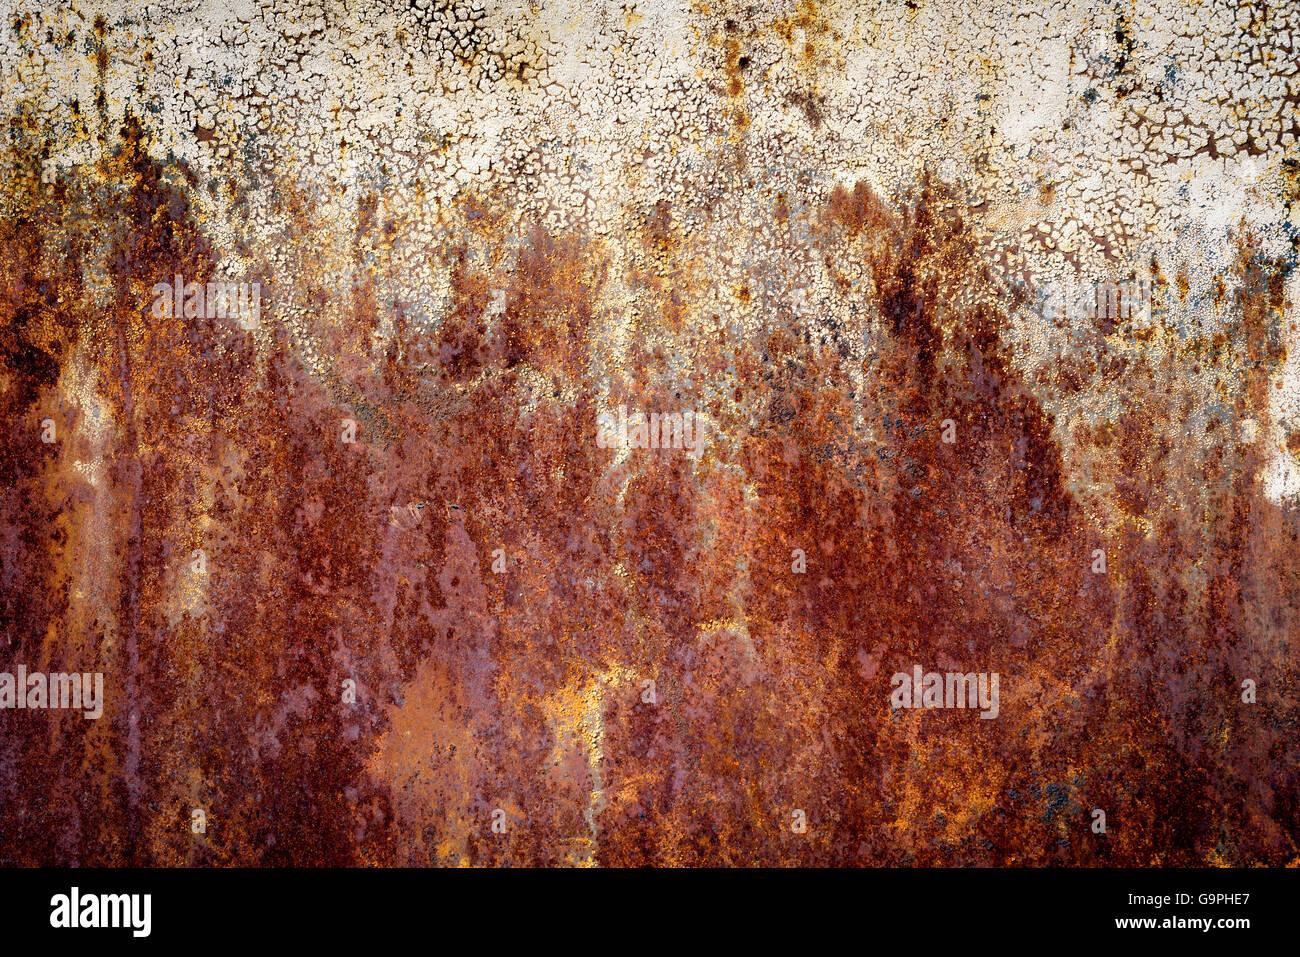 Very Old Dark Orange Rust Stains On An Aged Metal Surface The Patterns Are Formed By Heavy Oxidization